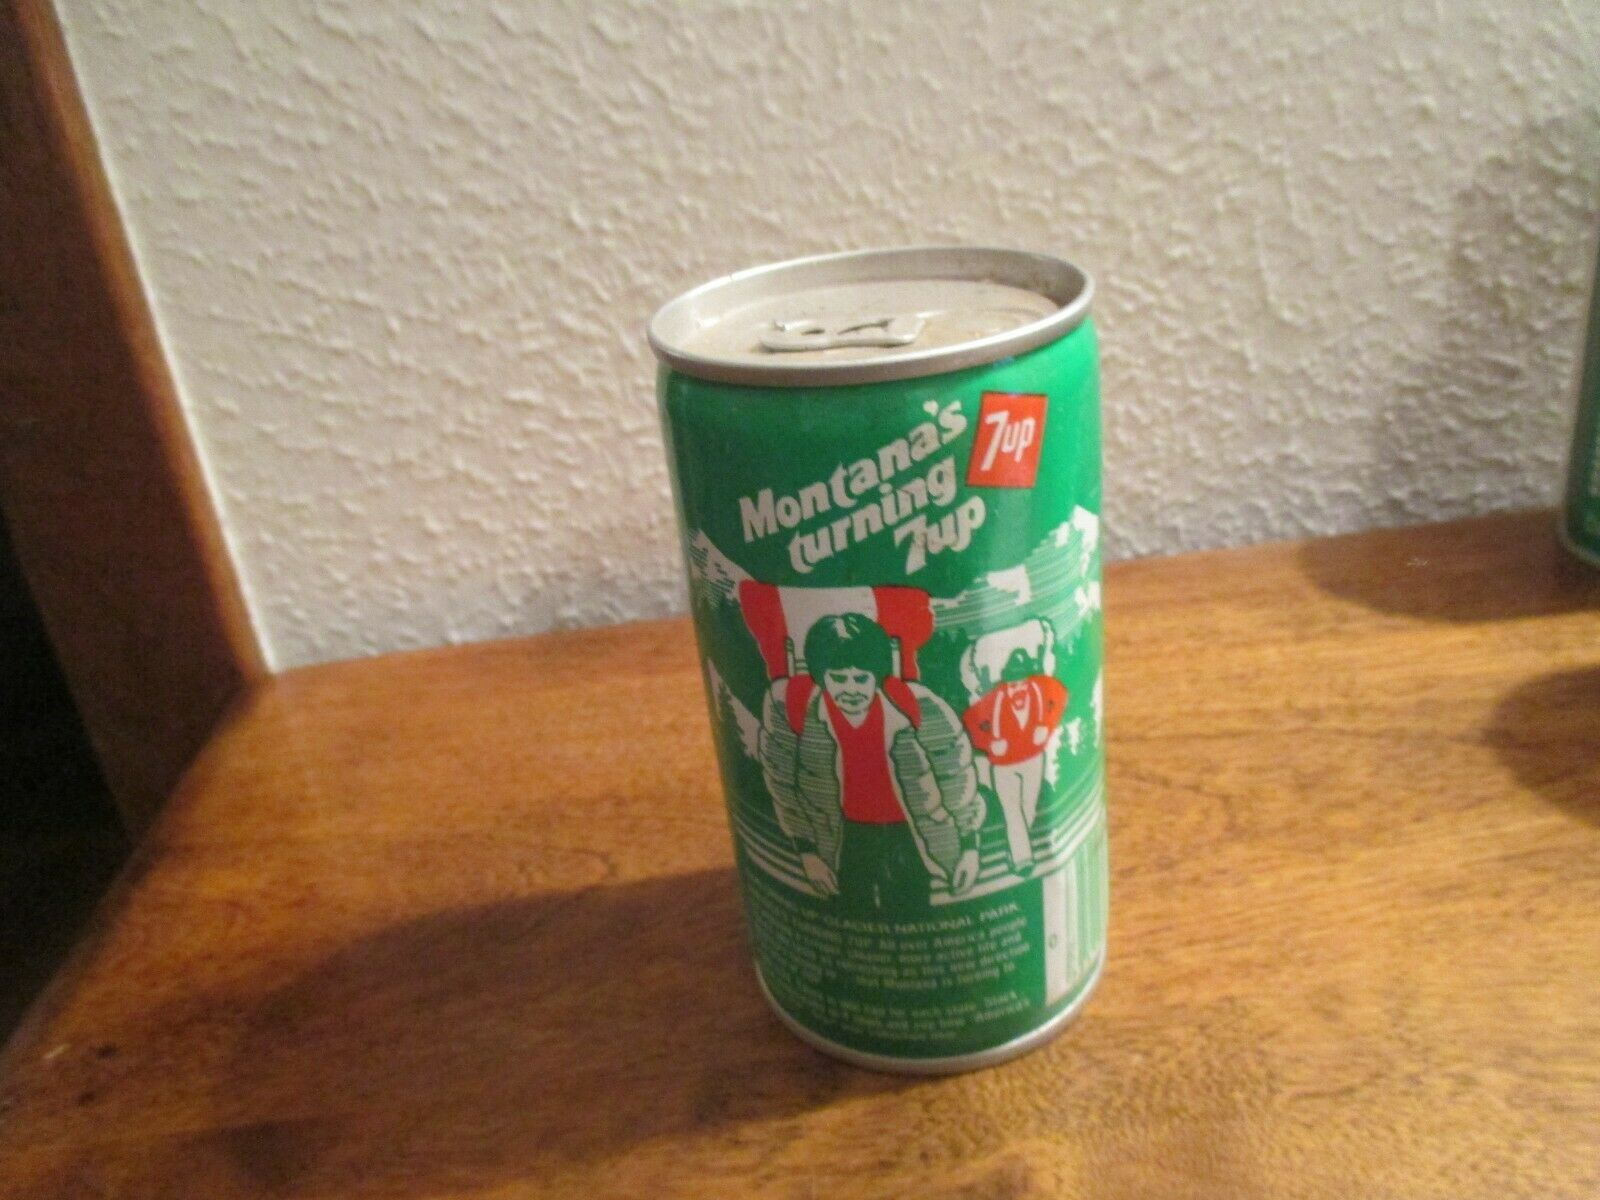 Primary image for Montana MT Turning 7up vintage pop soda metal can exploring glacier national par